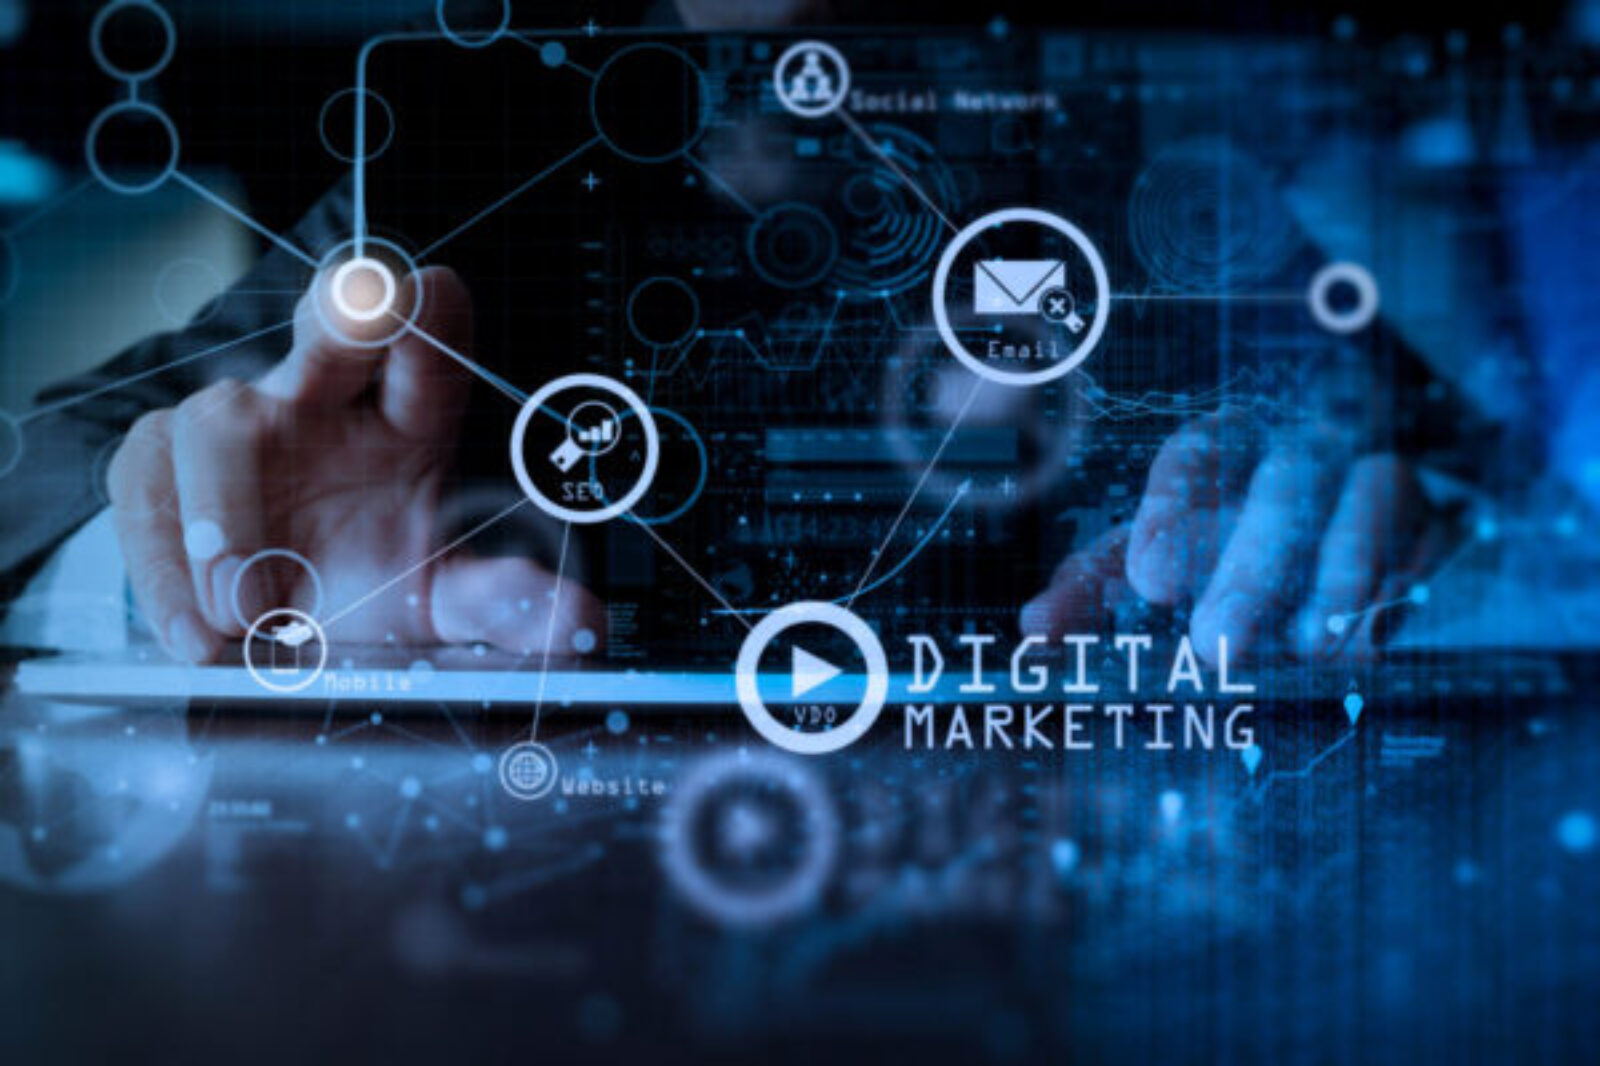 Why Digital Marketing Is Important for Grow Your Business